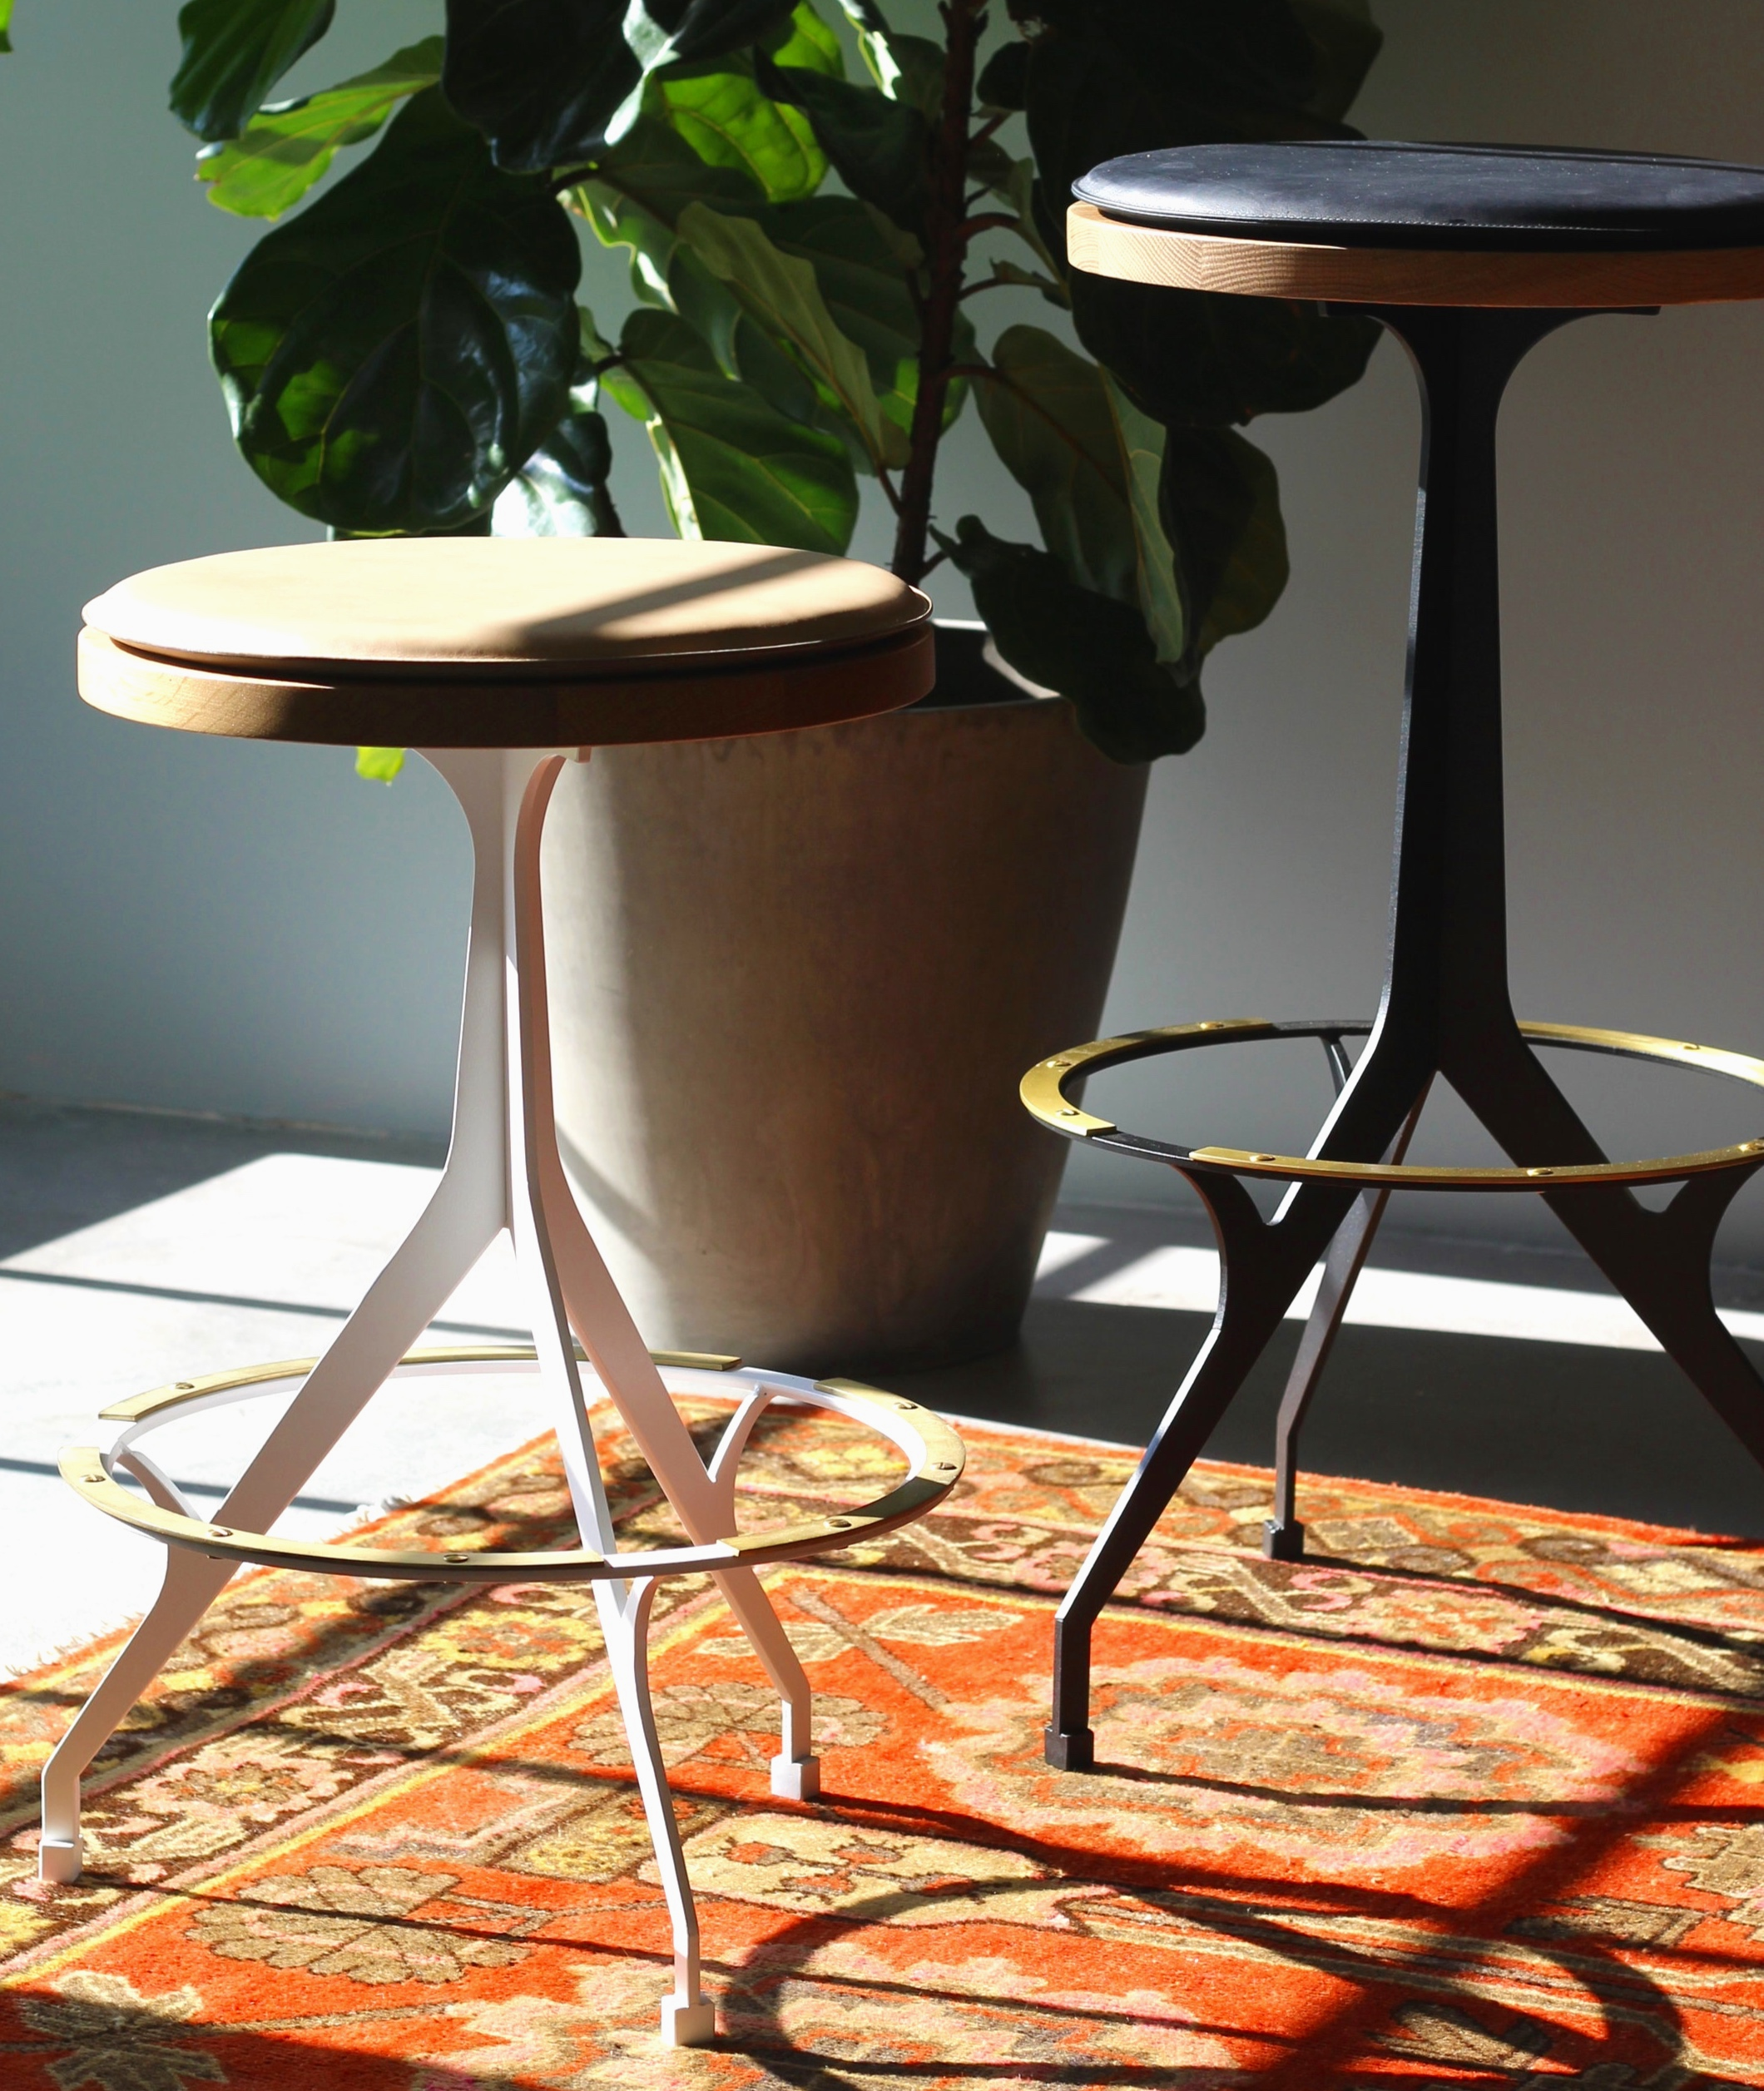 Skylar Morgan Furniture + Design   Skylar Morgan Furniture and Design makes handmade, clean-lined furnishings, millwork and architectural woodwork for homes and commercial spaces all over the American southeast and the world.  American-made and Atlanta-proud, Skylar Morgan Furniture + Design work to contribute to the everyday dialog of design that's making the South a creative capital of the U.S. Their motto is, build what you love, and love what you build.